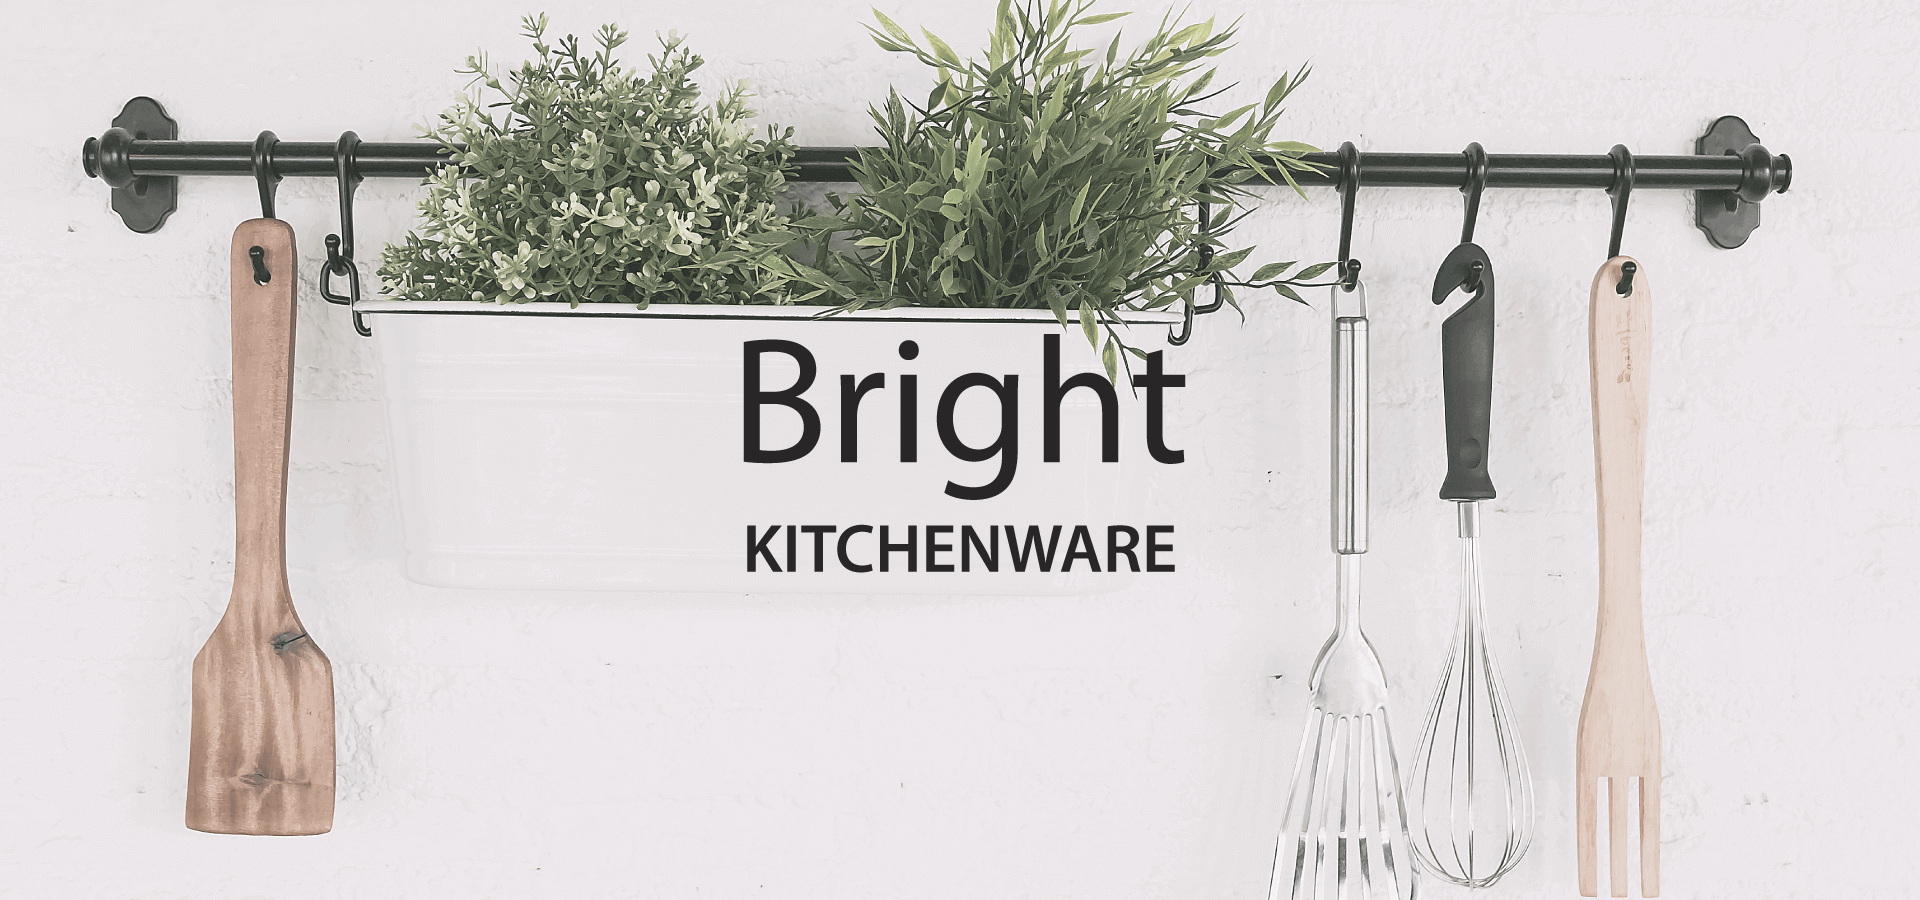 Bright Kitchenware